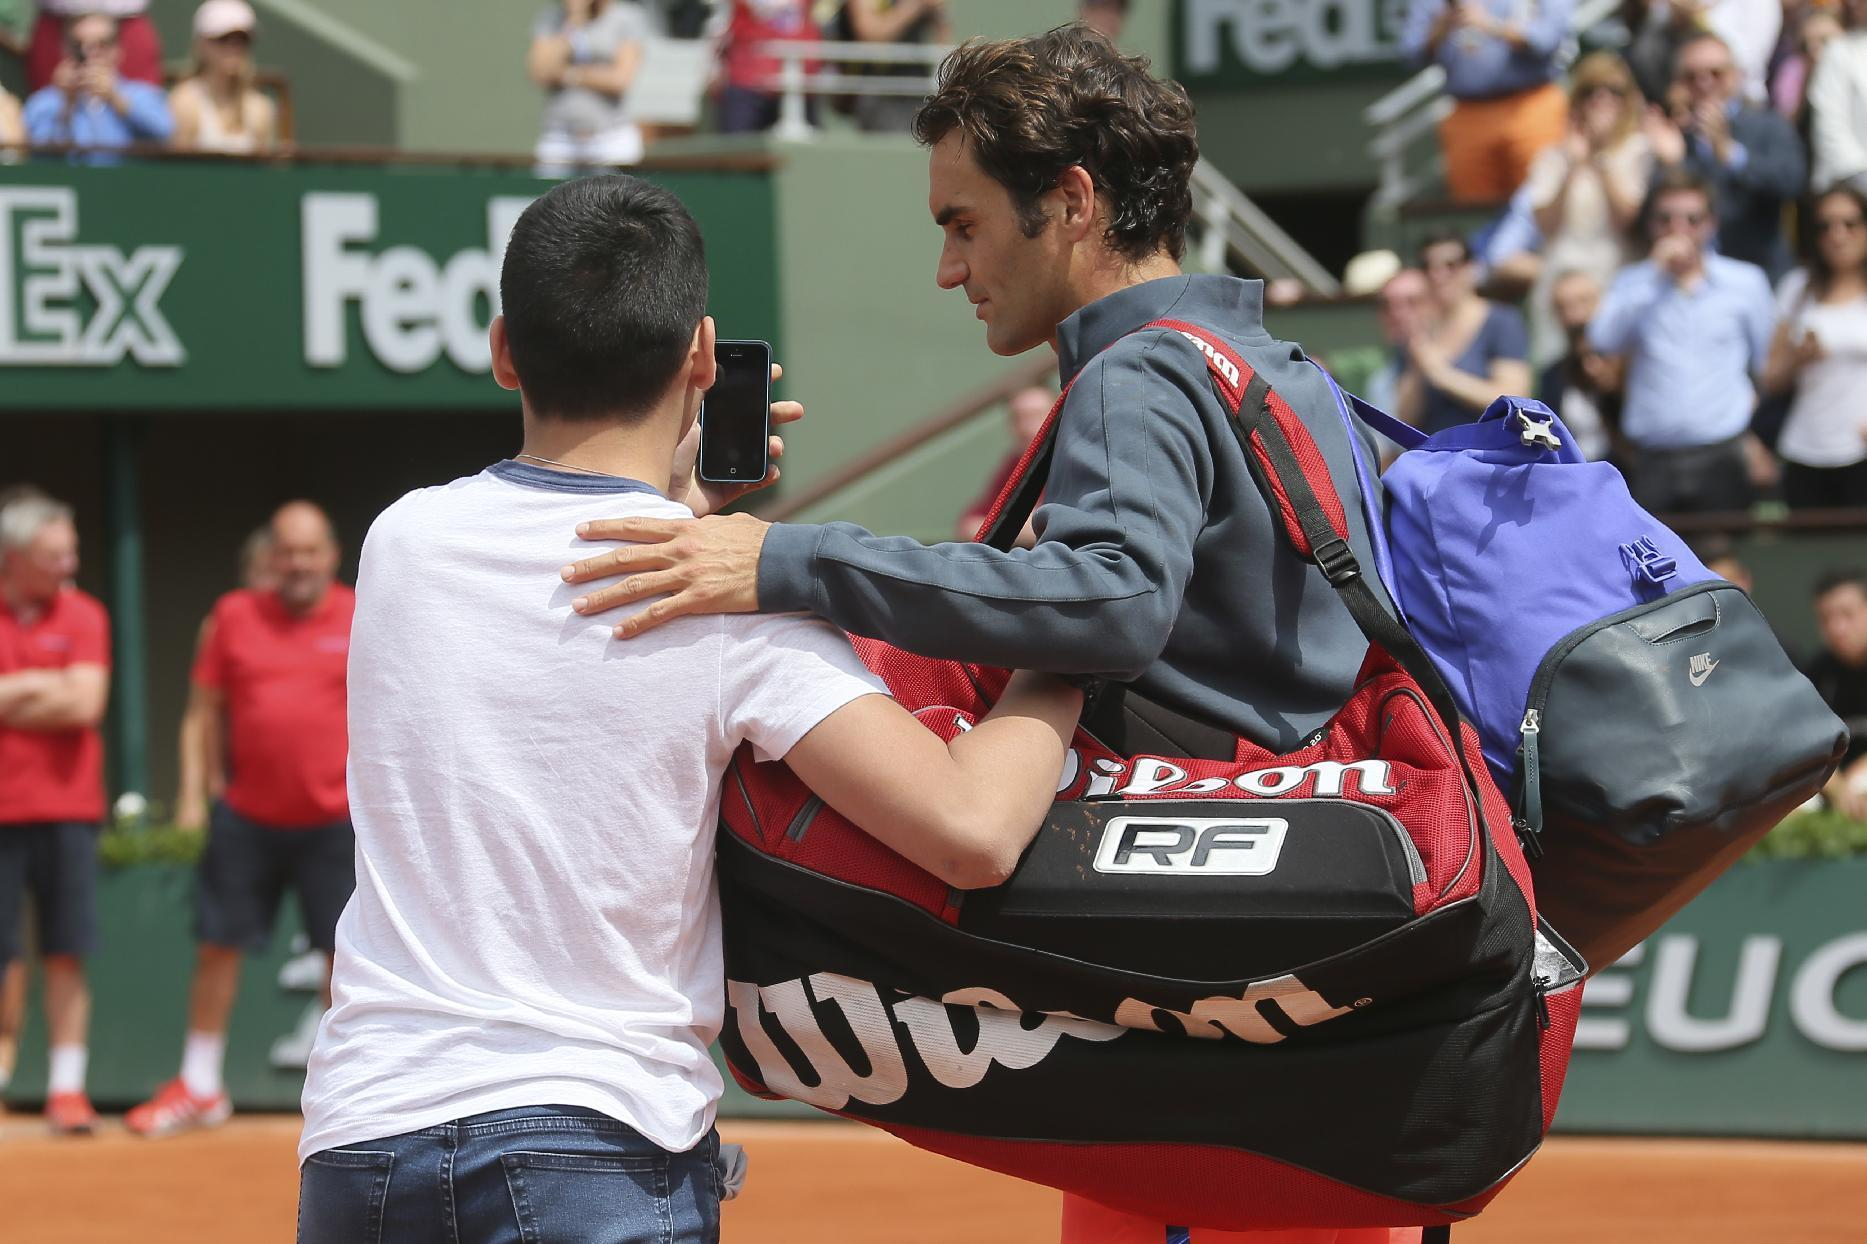 FRENCH OPEN LOOKAHEAD: Worth watching security for Federer